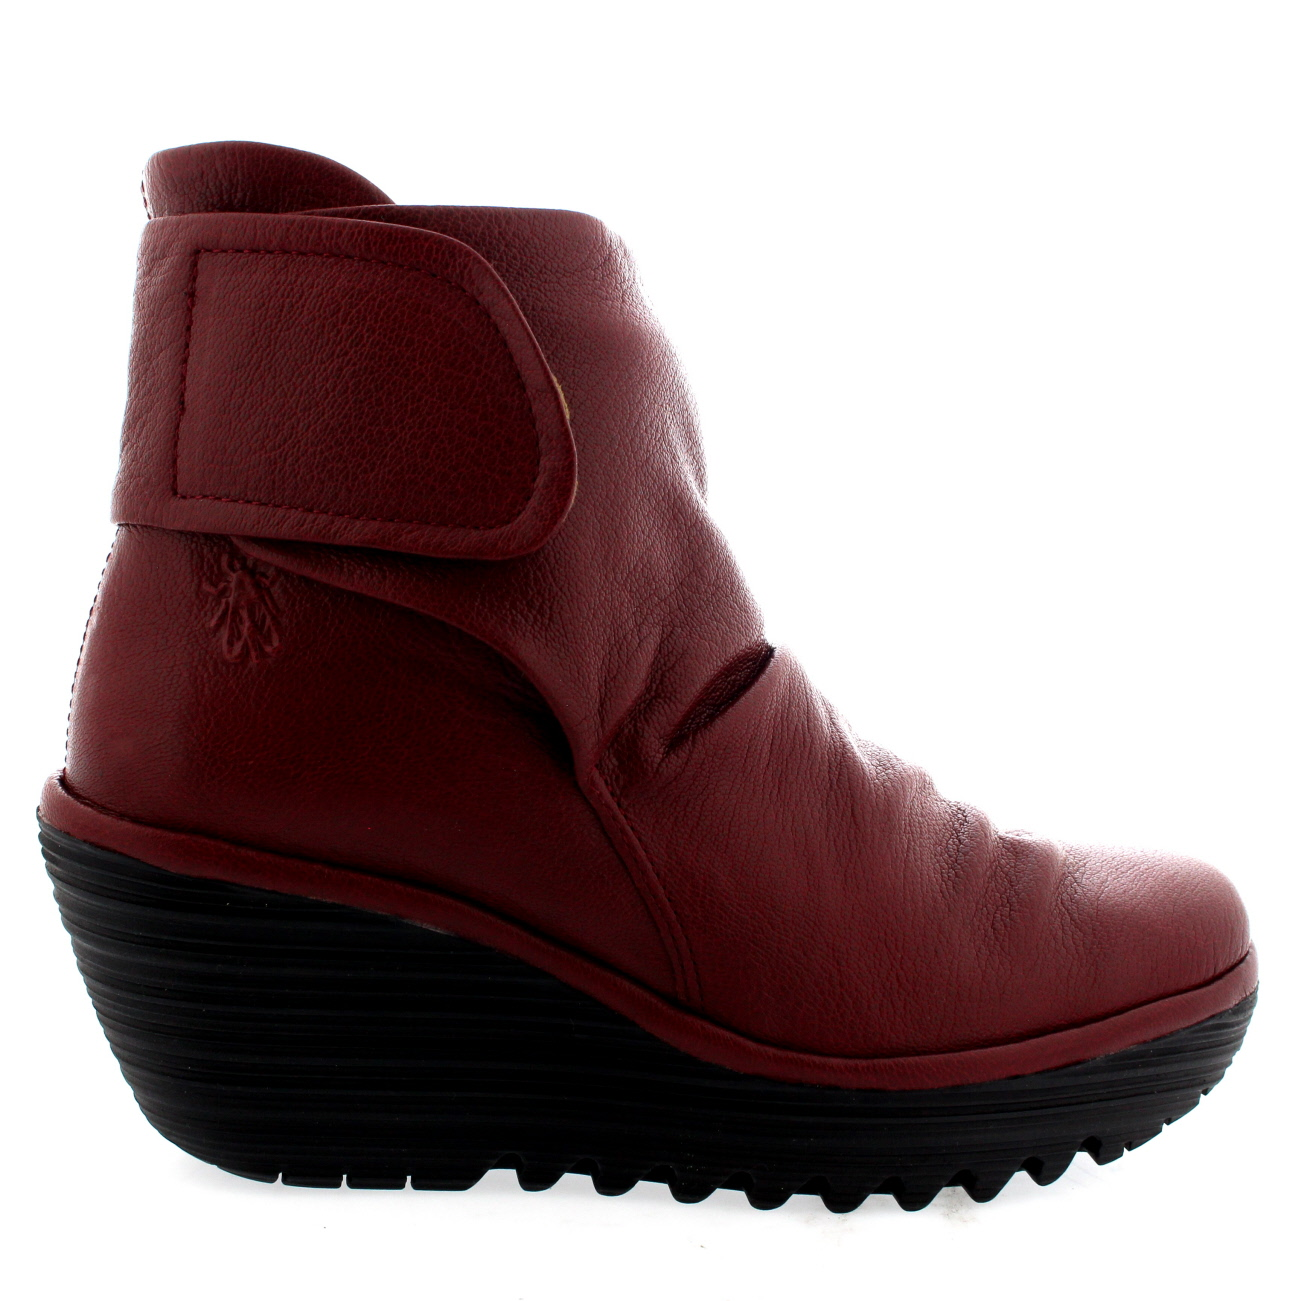 24b2929f7a6 Womens Fly London Yegi Wedge Heel Leather Winter Ankle Boots Shoes ...